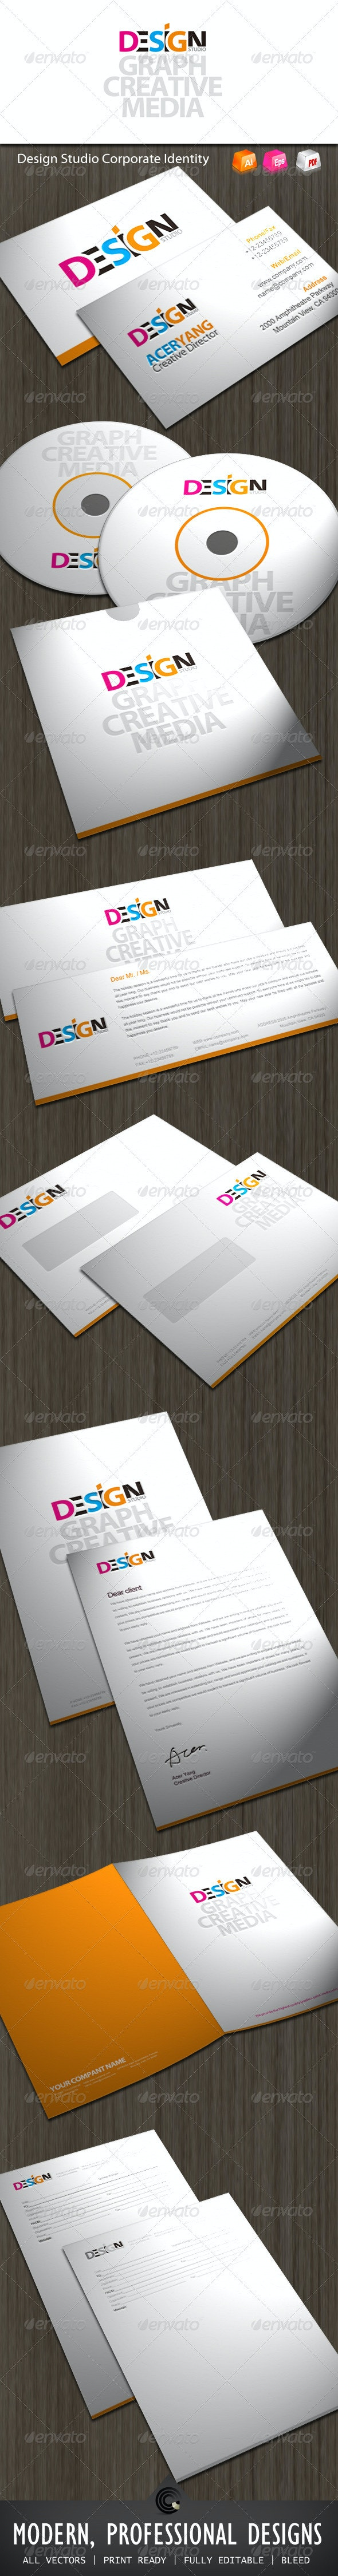 Design Studio Corporate Identity - Stationery Print Templates